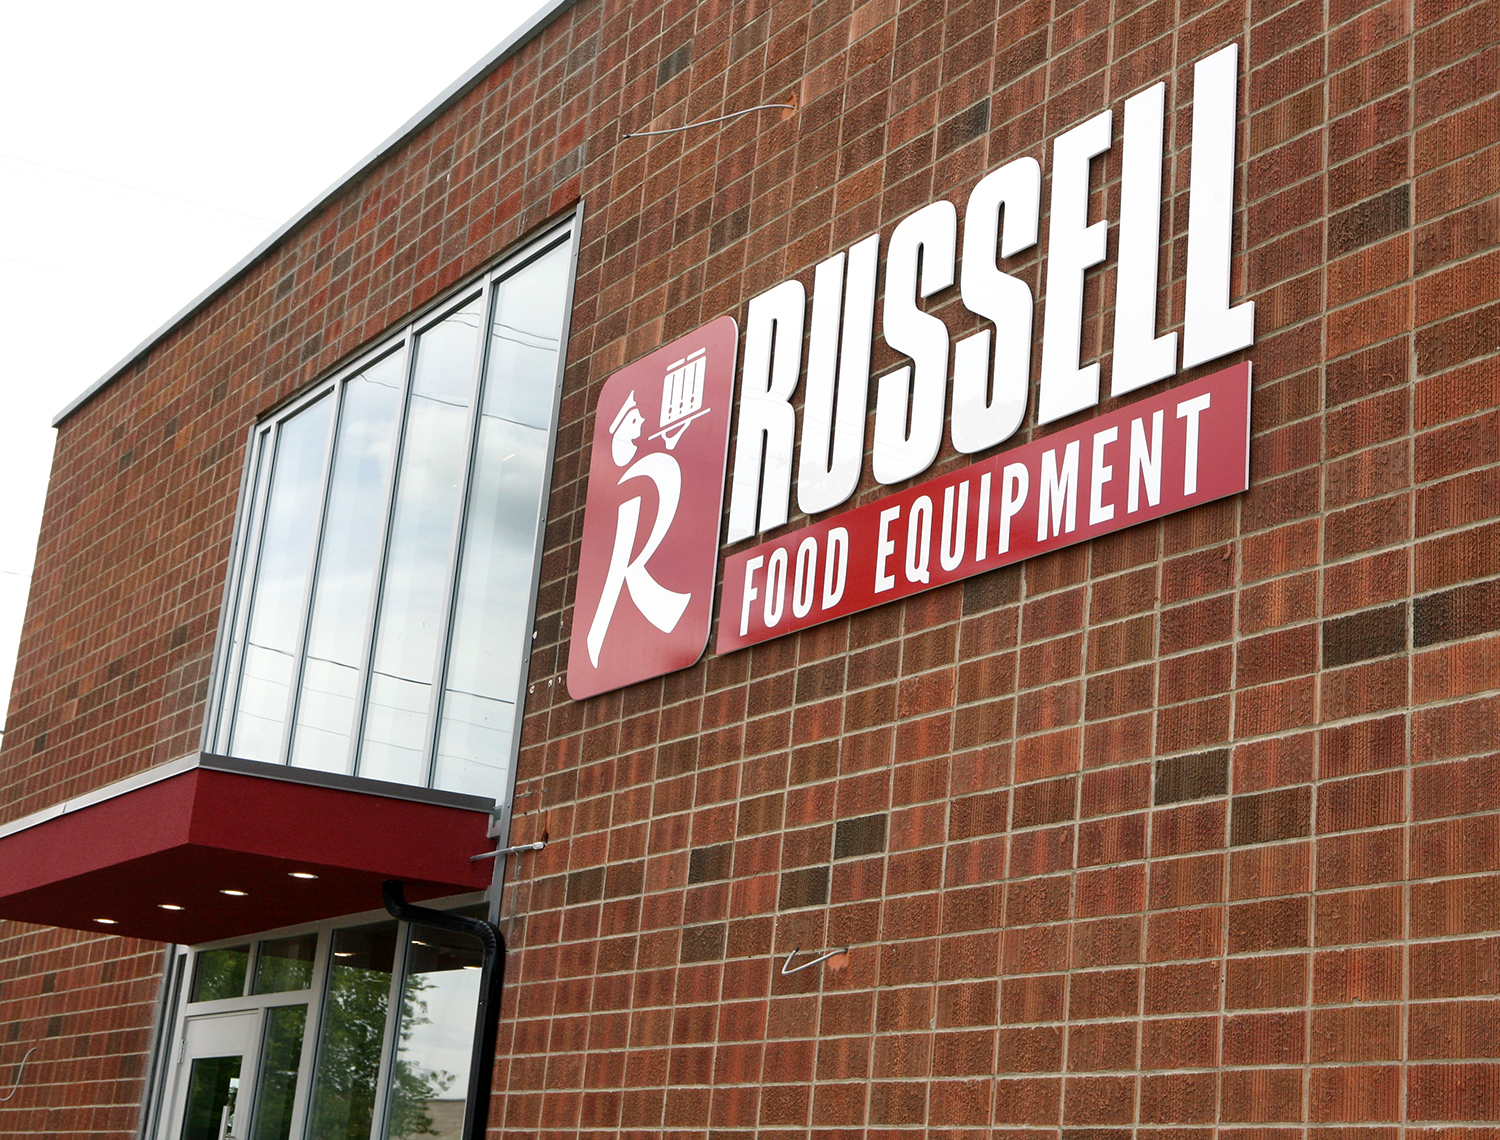 Russell Food Equip Exterior CCC.jpg